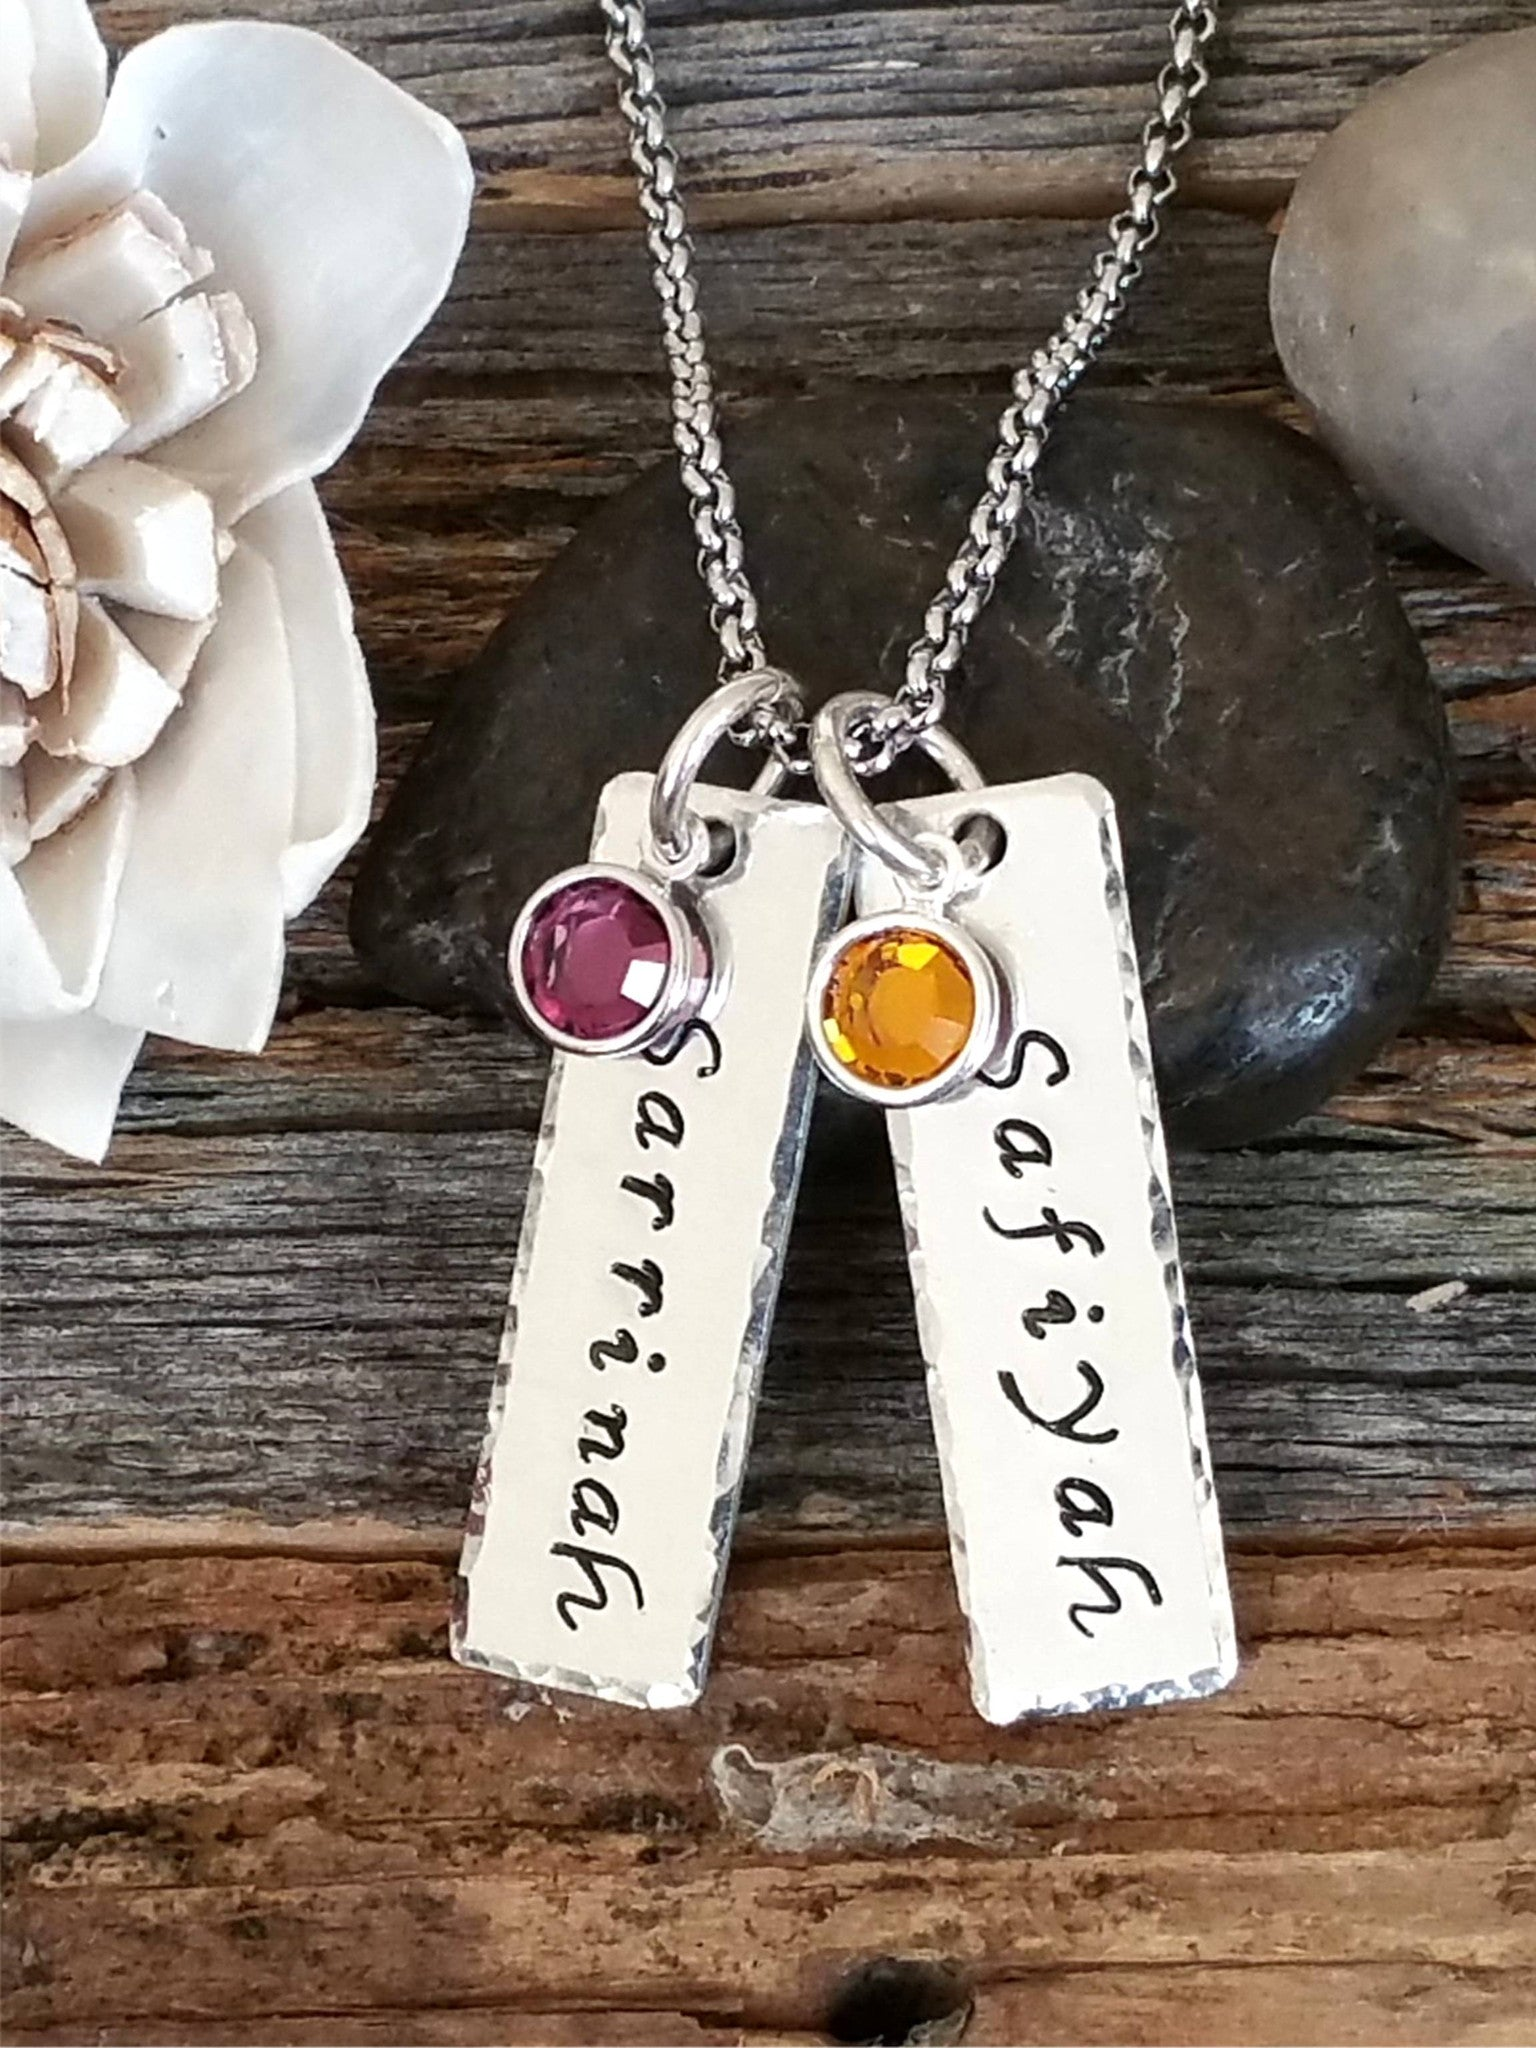 Personalized name tags with birthstones necklace